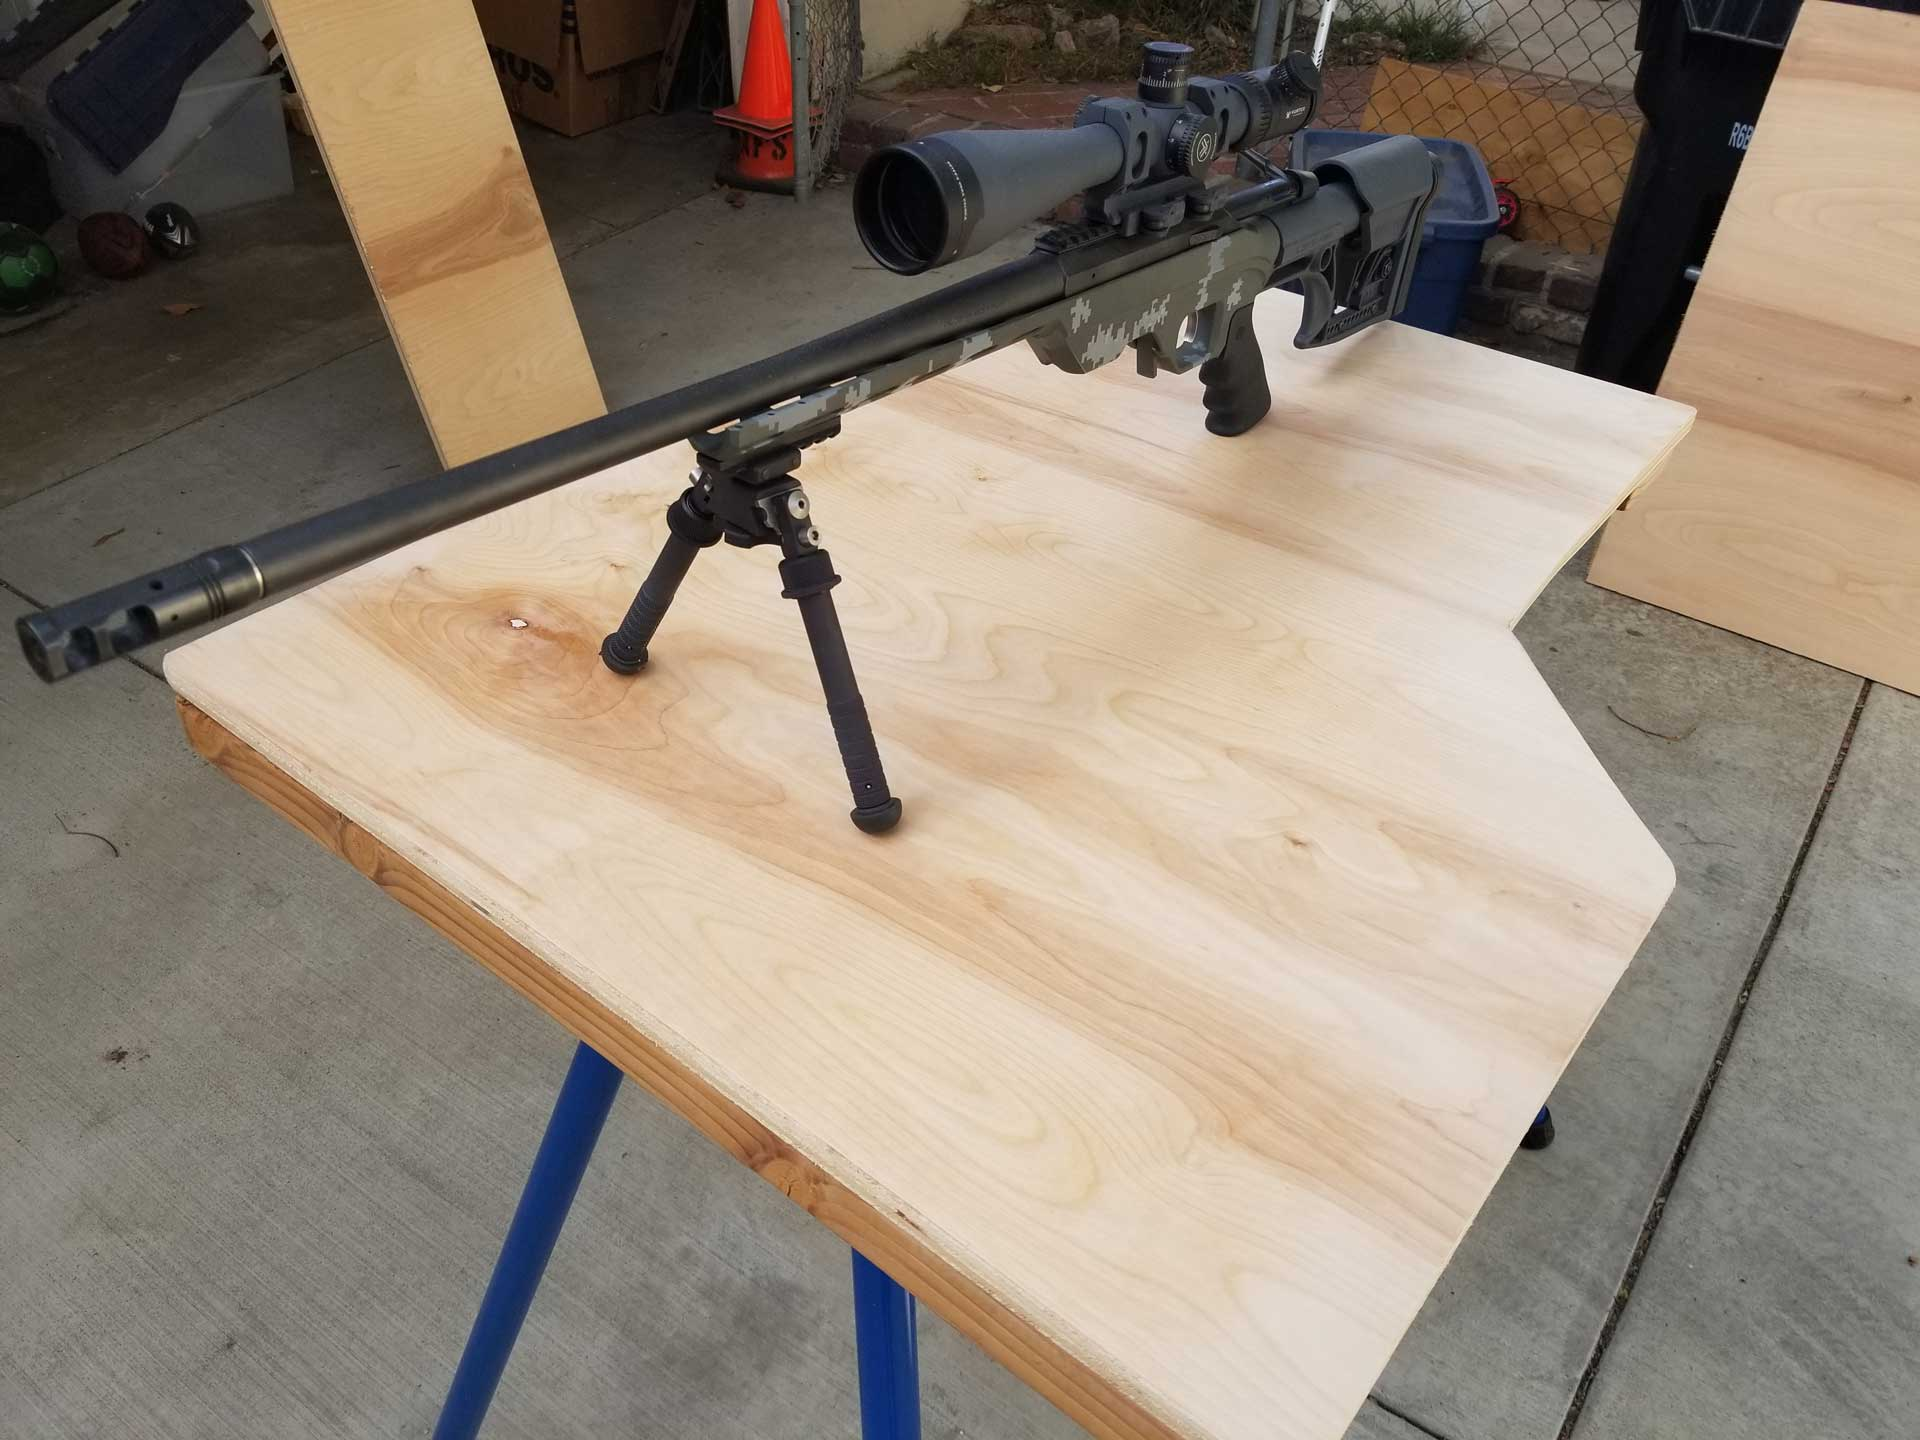 Diy Shooting Bench With Rugged Buddy Legs Findrange